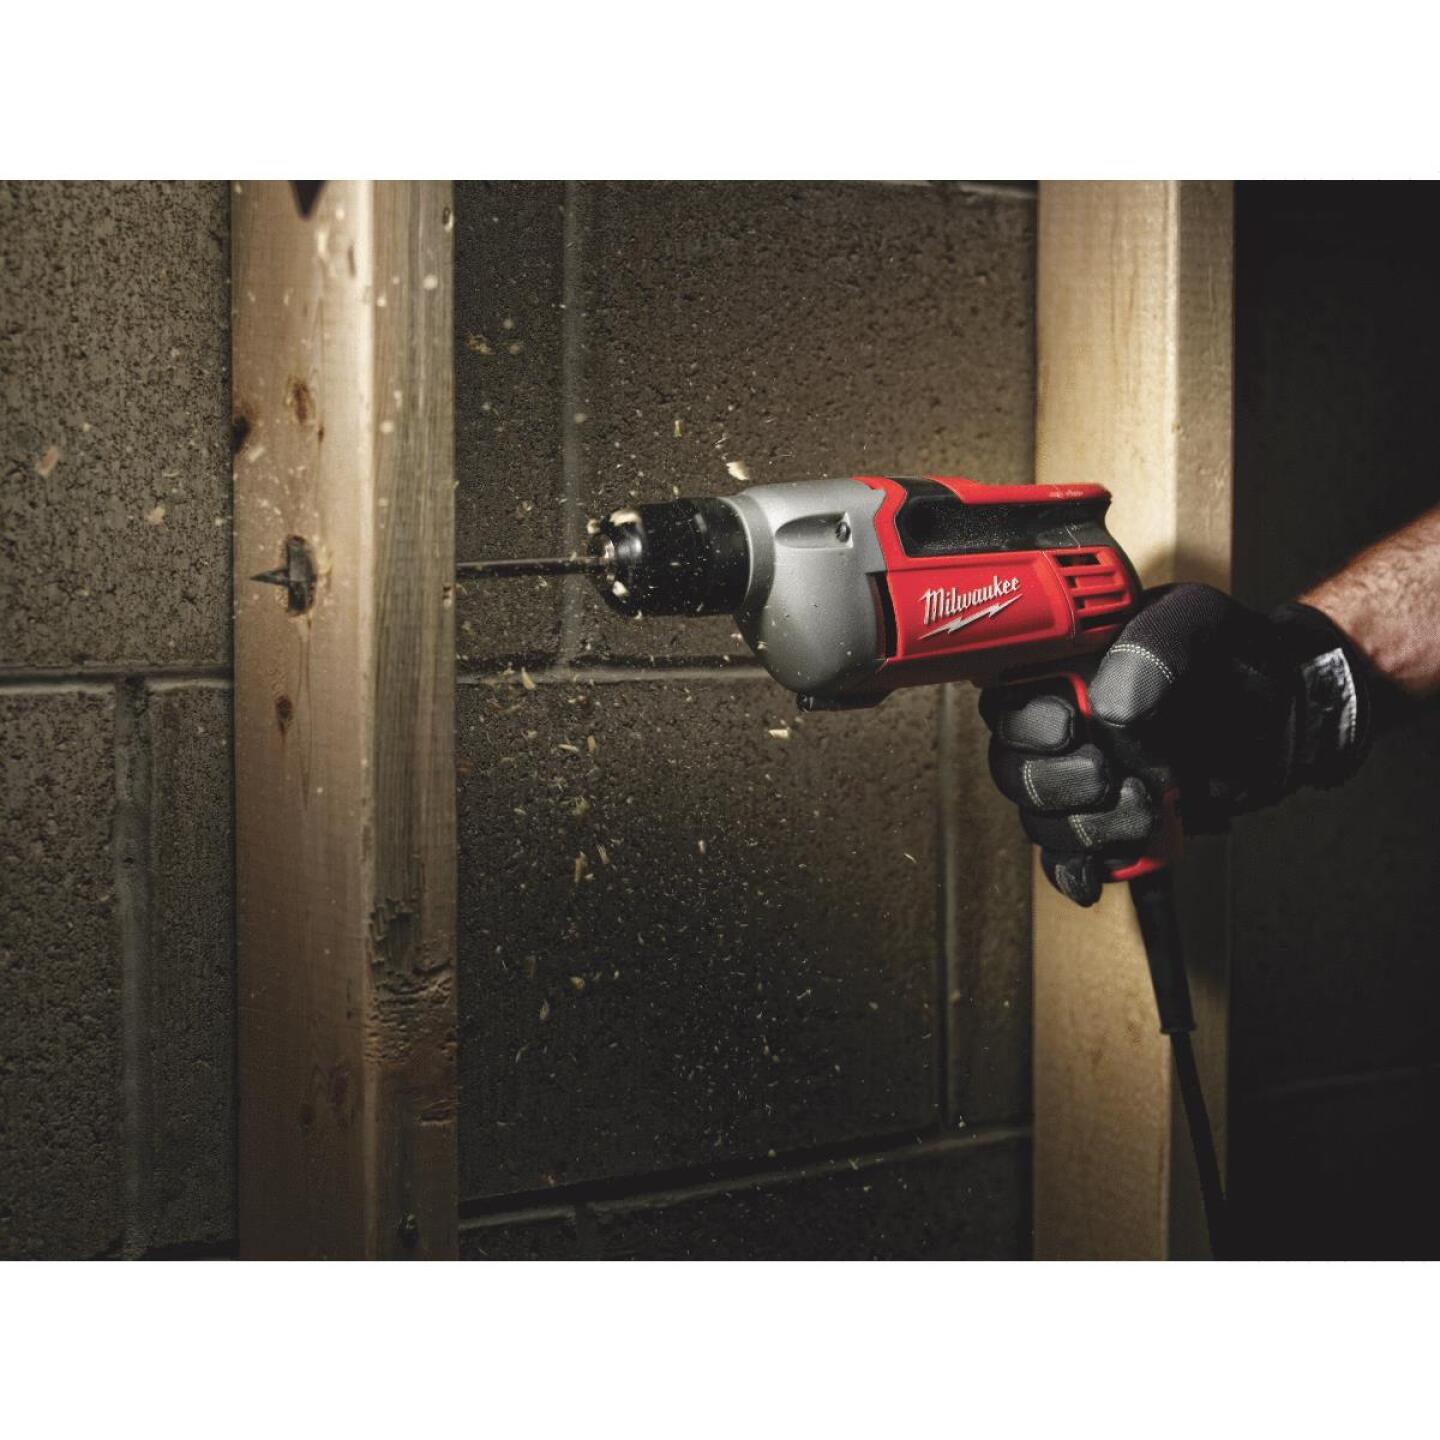 Milwaukee 3/8 In. 8-Amp Keyless Electric Drill Image 3